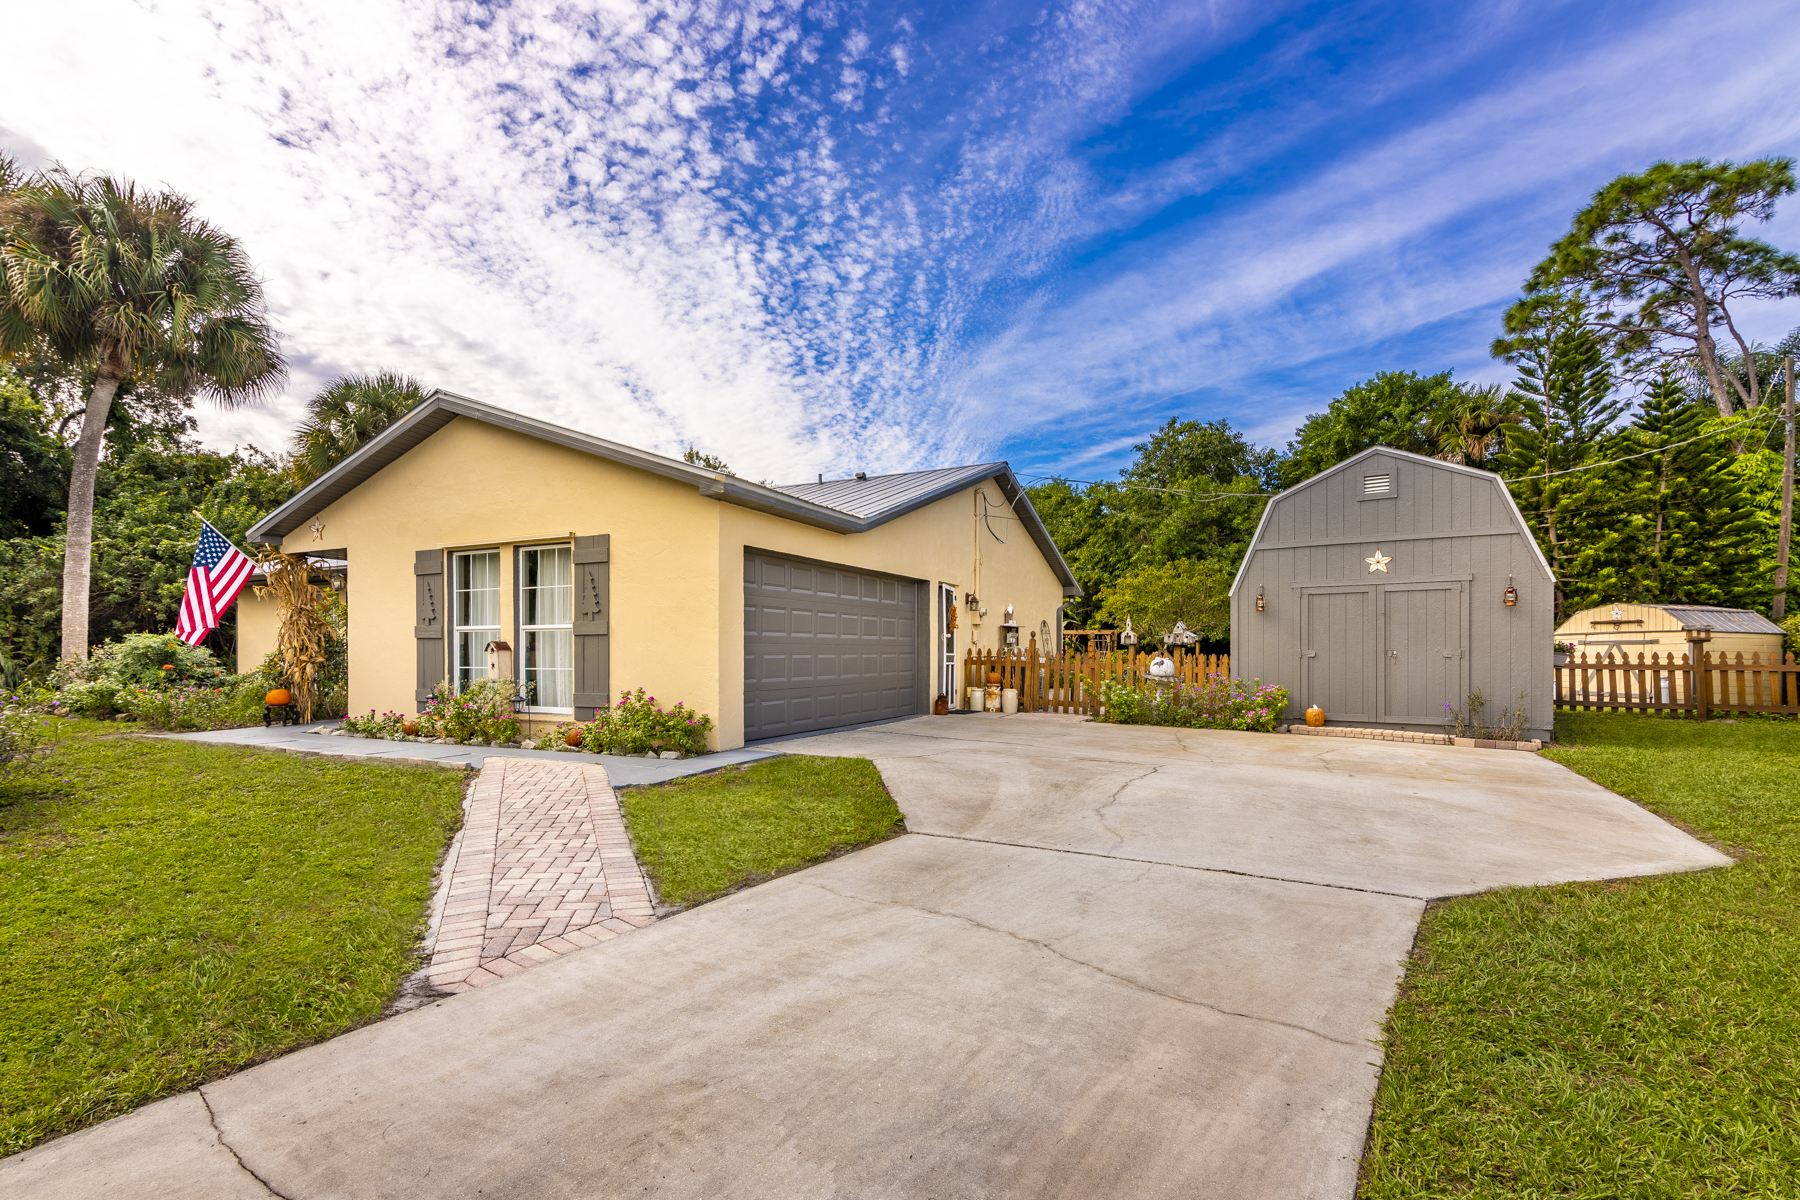 Single Family Homes for Sale at Rustic Cabin-Style Retreat 101 11th Court Vero Beach, Florida 32962 United States